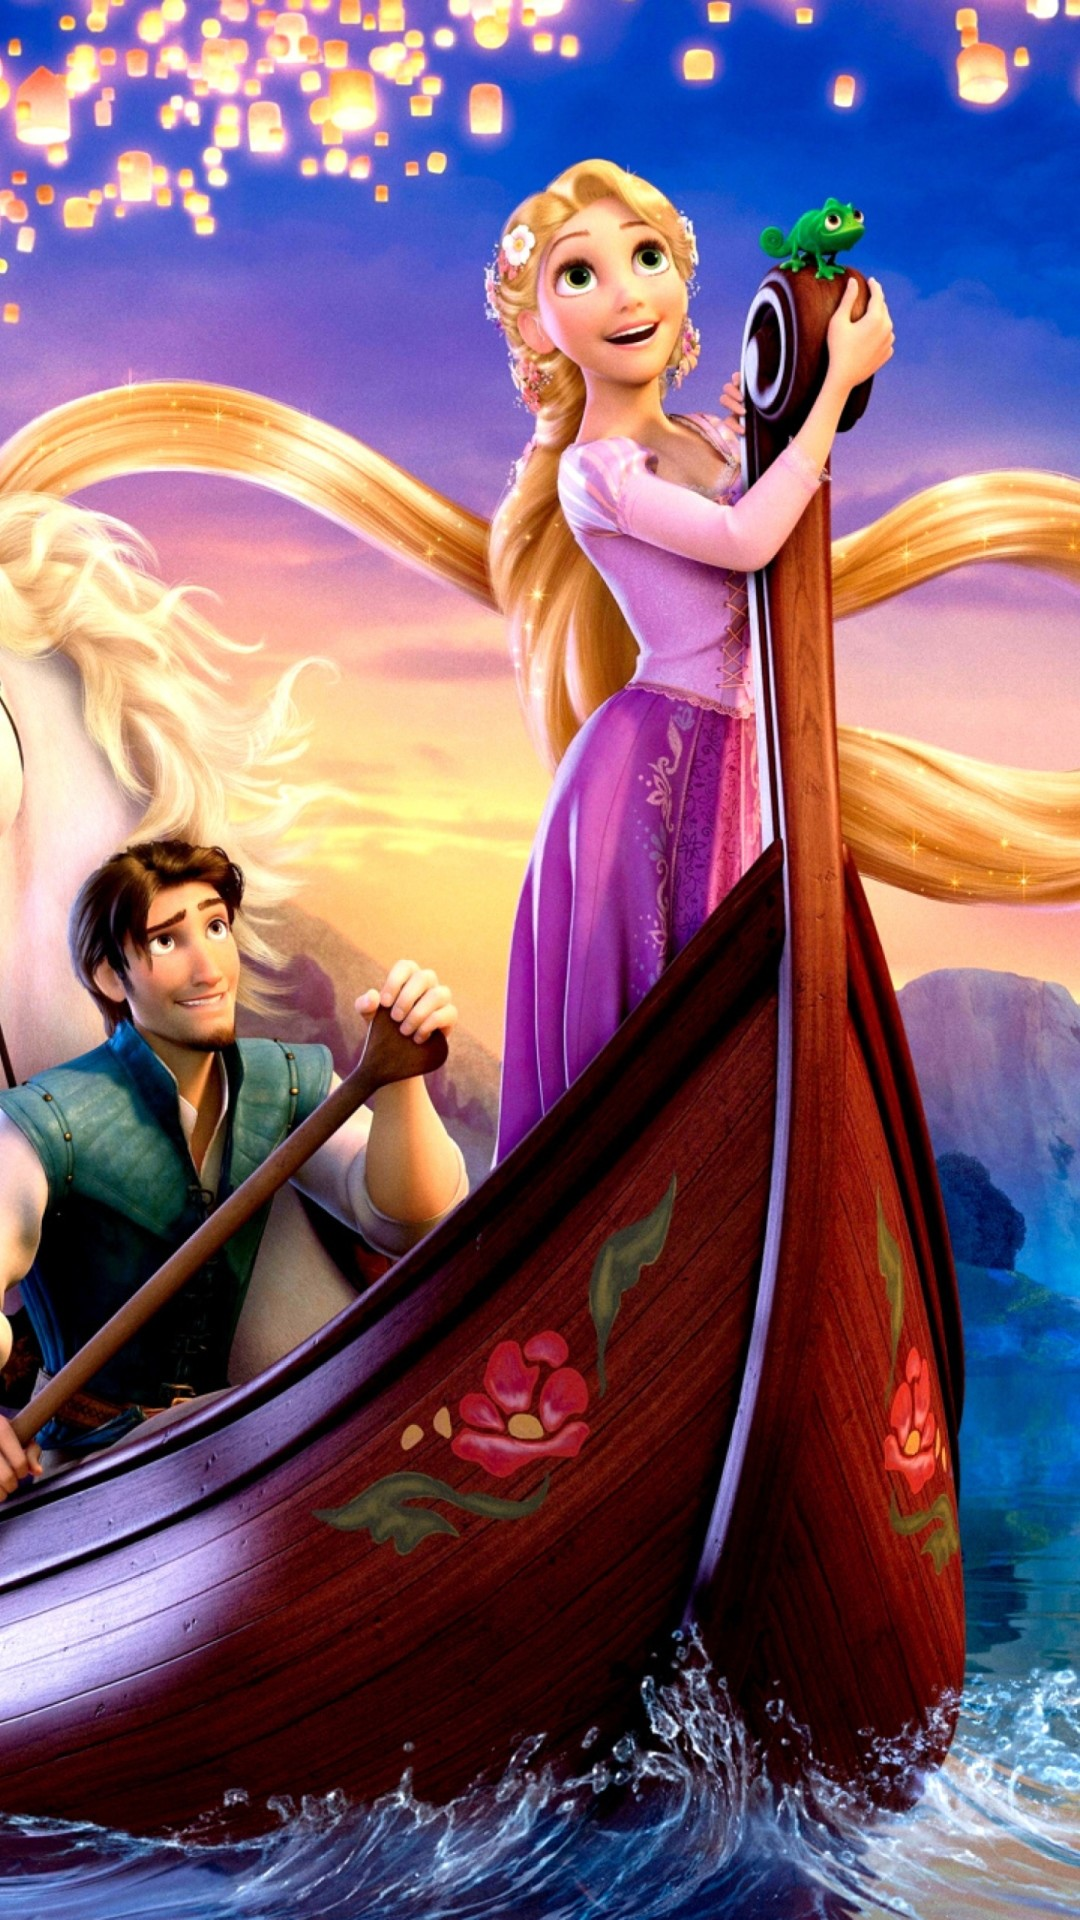 Disney tangled wallpapers 71 background pictures - Rapunzel wallpaper ...